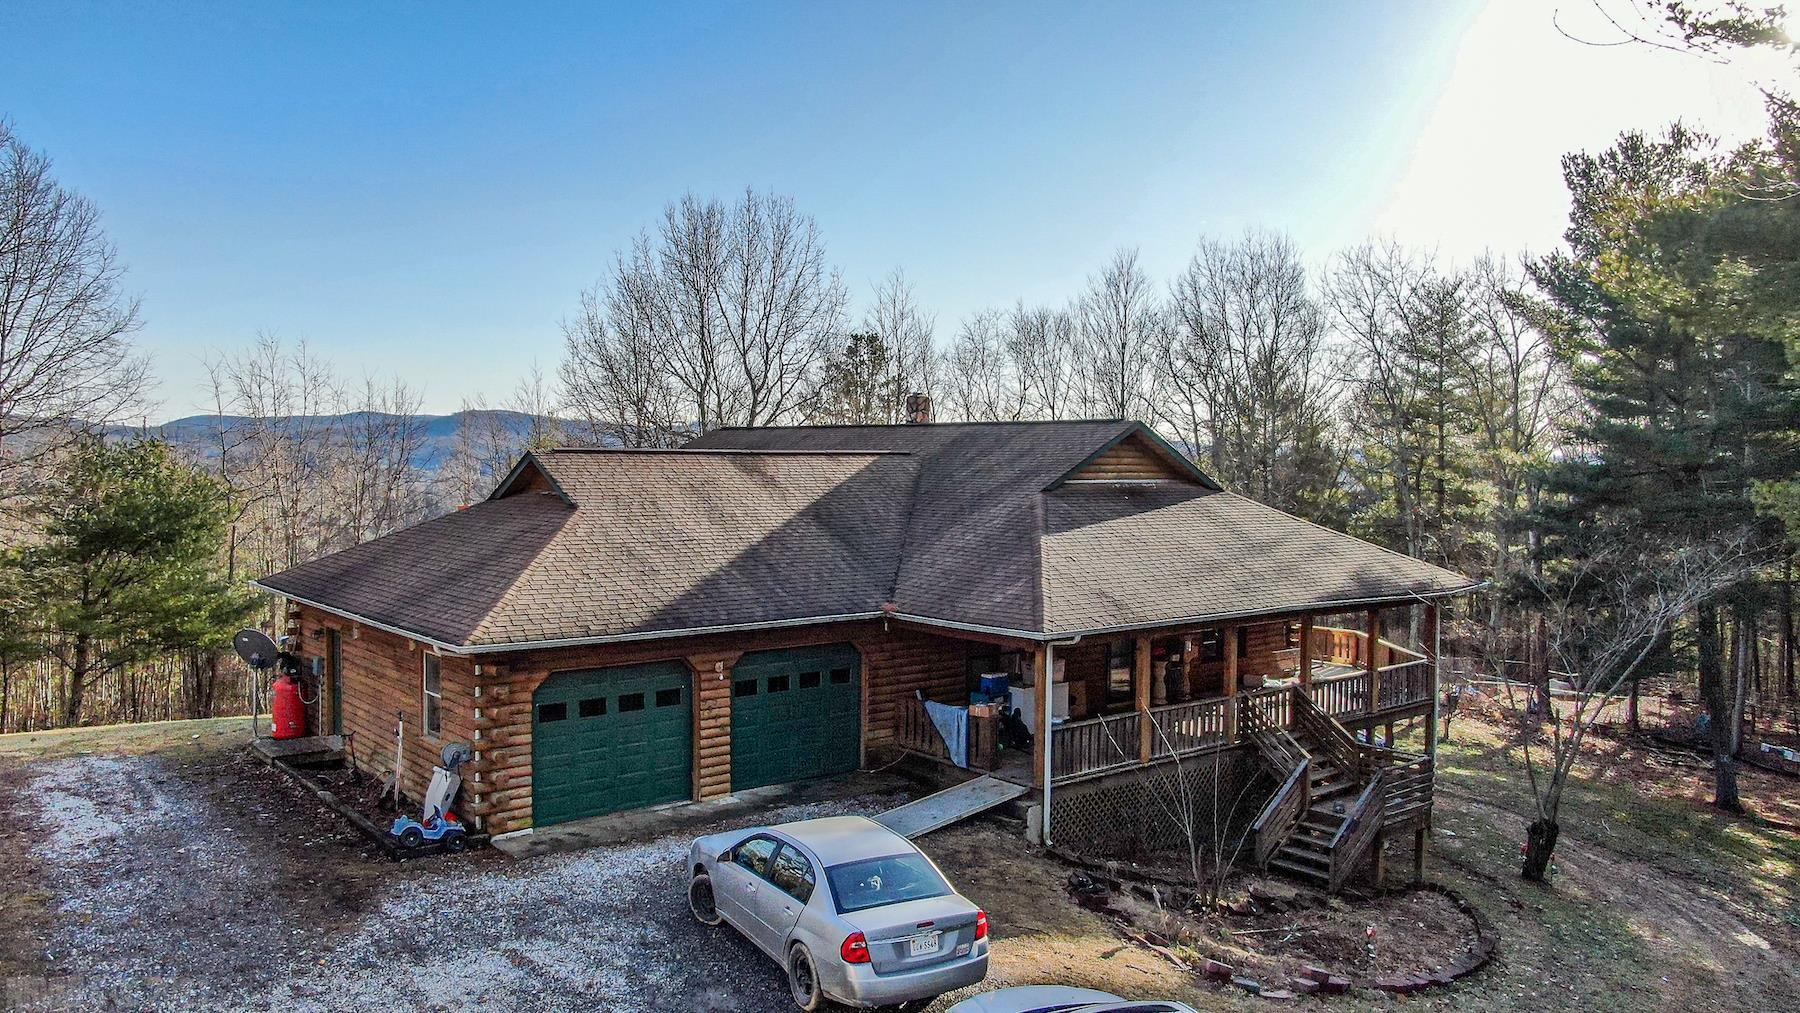 Log Home for Sale at Online Only Auction! Preview Dates- Saturday March 6th @ Noon & Friday March 12th @ 4 PM. Bidding Ends March 18th @ 3 PM. This home features 4,000 sq. ft. with 6 bedrooms and 3 full bathrooms. There are 2 levels, a main level and a basement. The basement is 2,000 sq. ft. and has 3 bedrooms, 1 full bath and 2 kitchenettes. Perfect for use as a mother-in-law suite. On the main level, there are 3 bedrooms and 2 bathrooms. The laundry is located on the main level as well. The home is on a private well, private septic and has a heat pump. There is also a gas log fireplace in the living room. This home has a fabulous covered, wrap around deck and the potential for an amazing mountain view. This property consists of 2 parcels combined to equal 9.16 +/- acres. The surrounding acreage is mostly wooded and is great for recreational use and privacy! Harvest Road is a shared drive and is privately maintained.